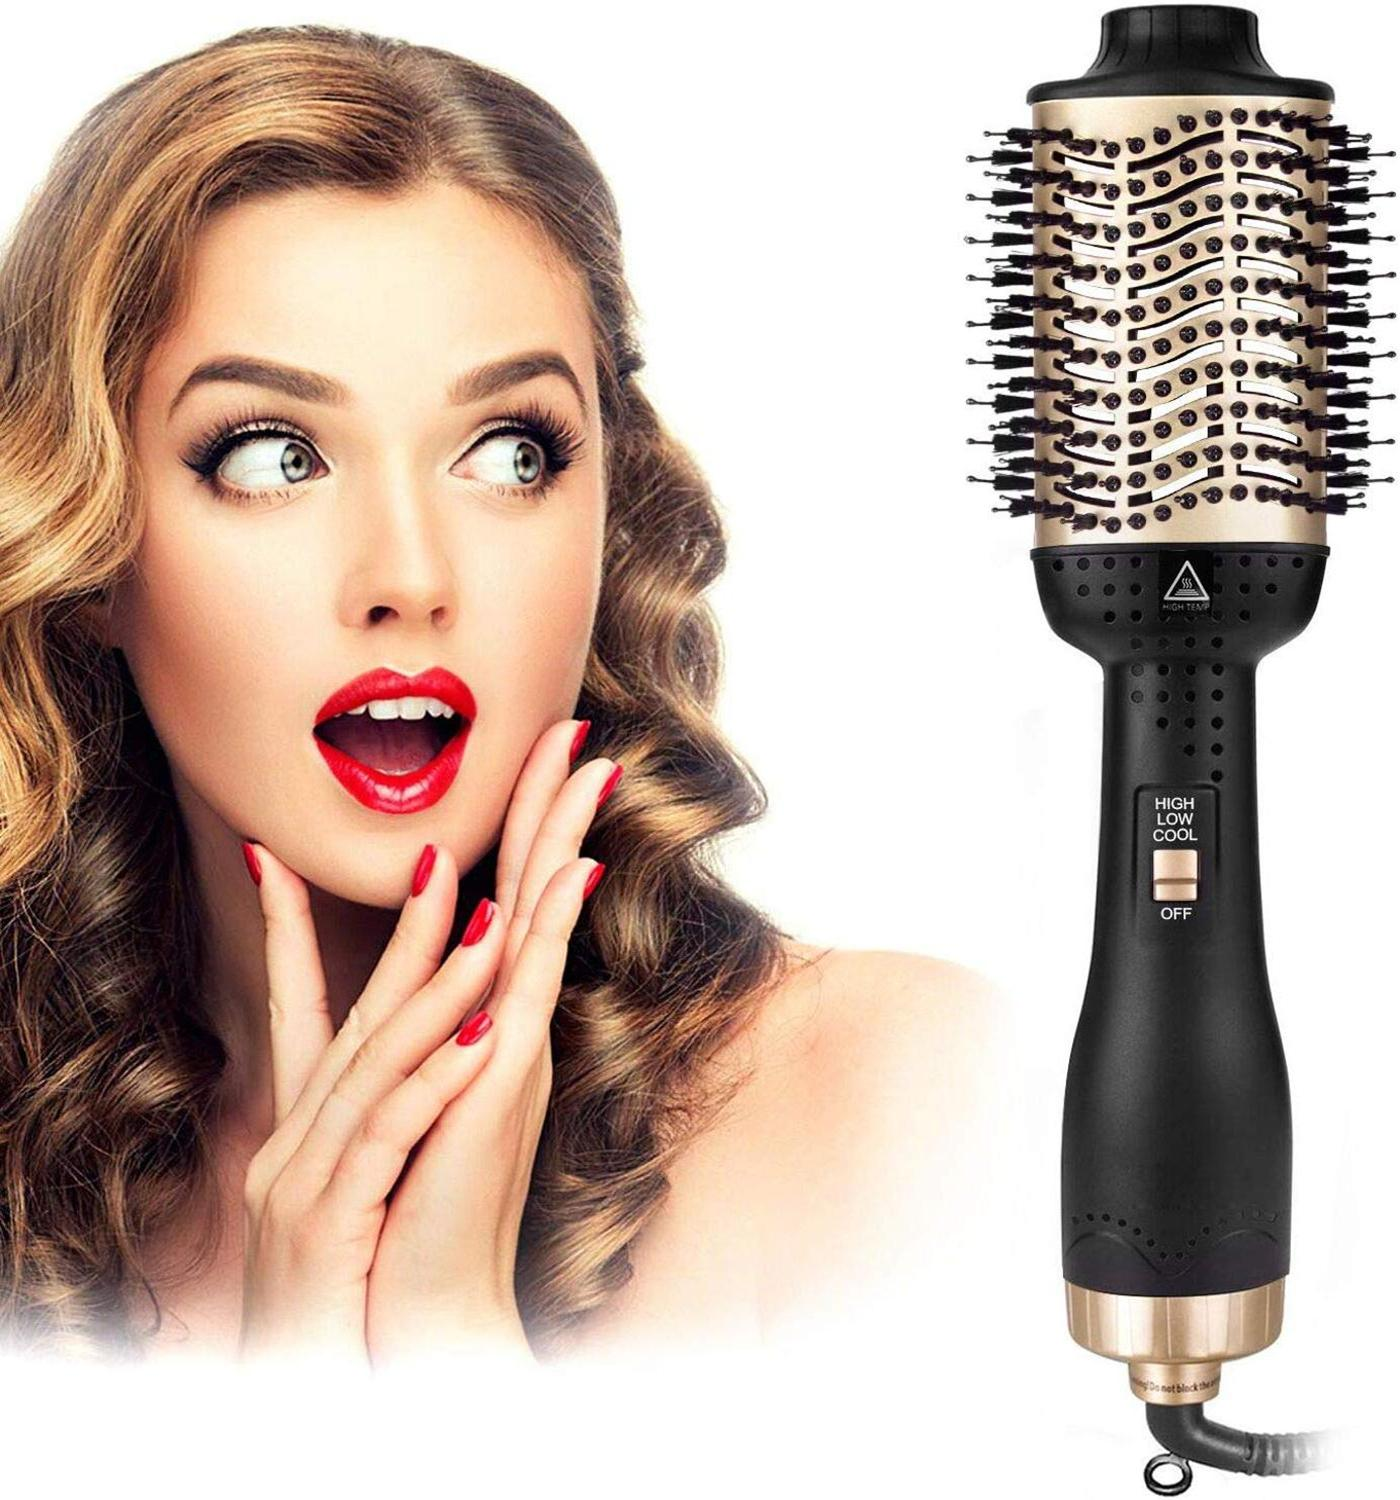 One Step Hair Dryer And Volumizer 4 In 1 Negative Ions Hair Dryer Brush Professional Curling Iron Rotating Brush Style Blow Comb